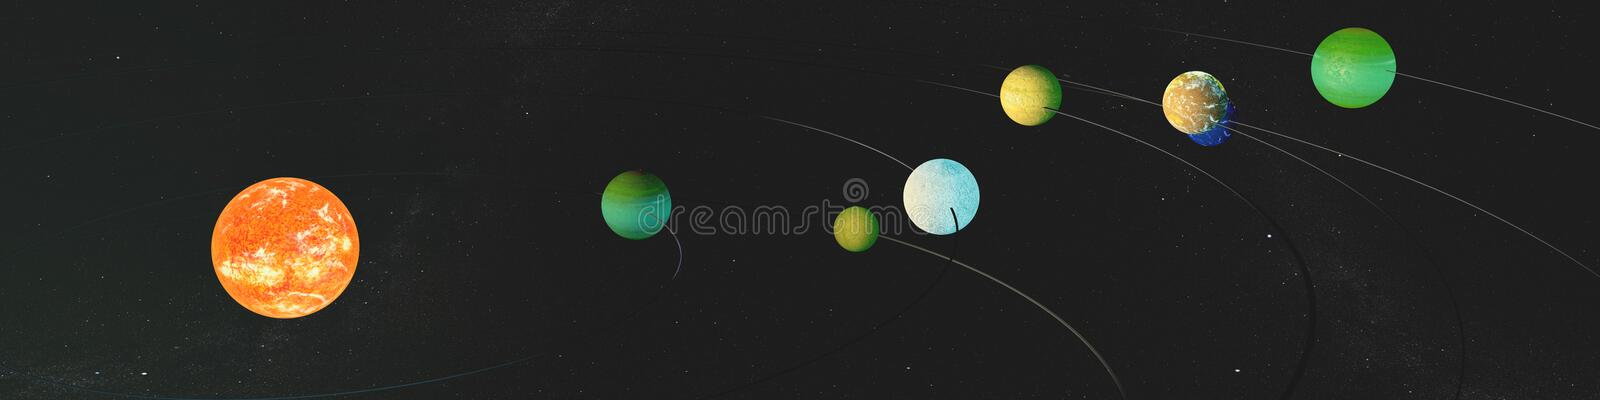 Panorama newly discovered exoplanets in TRAPPIST-1 system. The creative idea of the seven planets, and the new sun. royalty free illustration